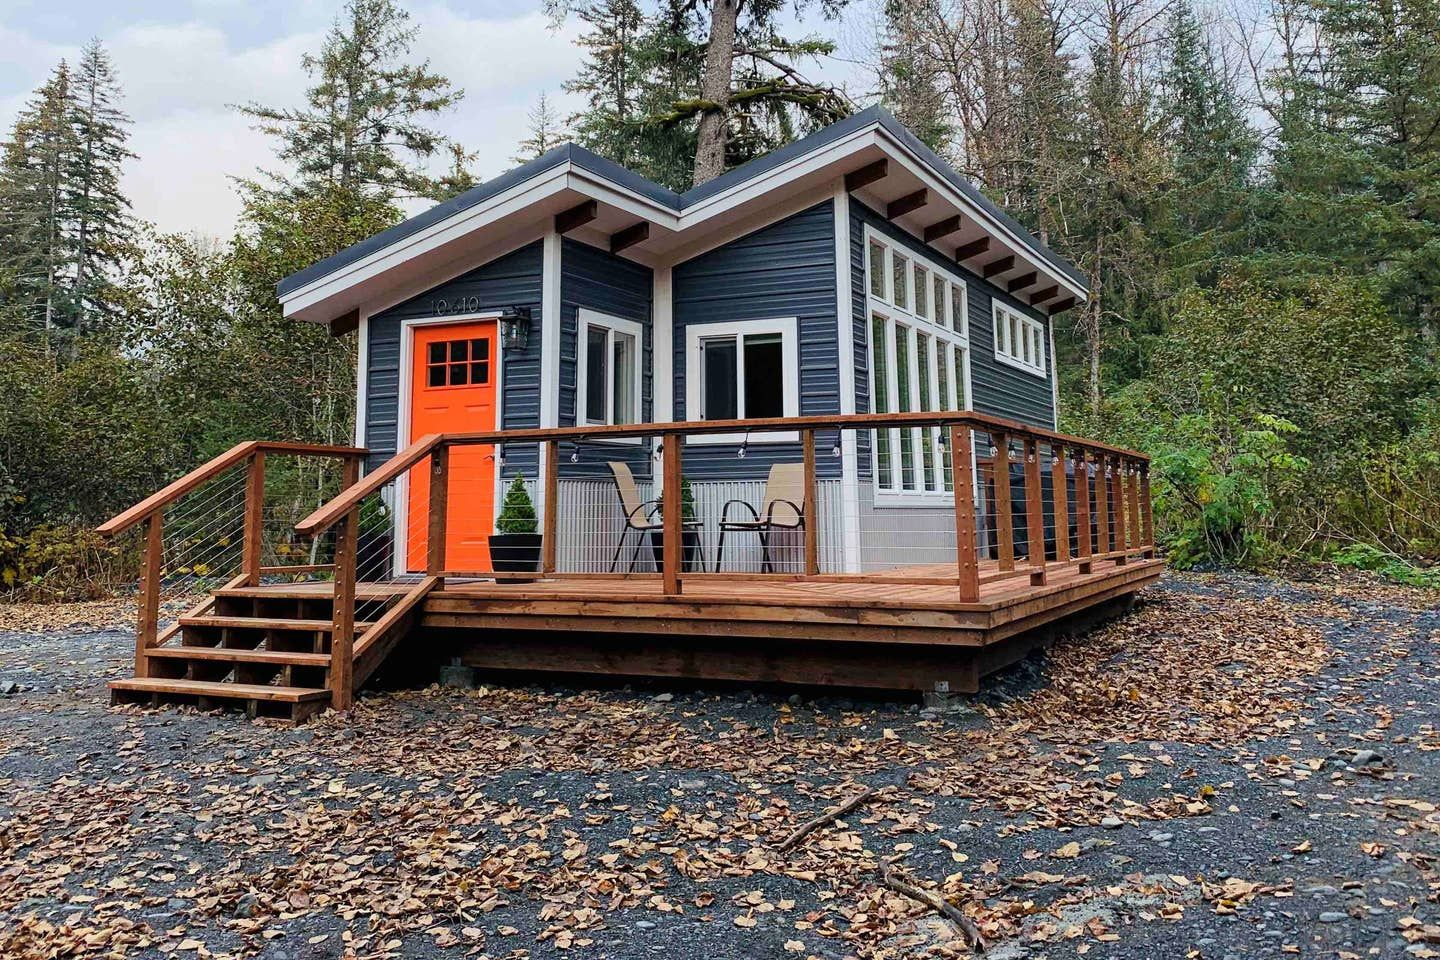 Experience Tiny House Living At Mystic Mountain! - Tiny houses for